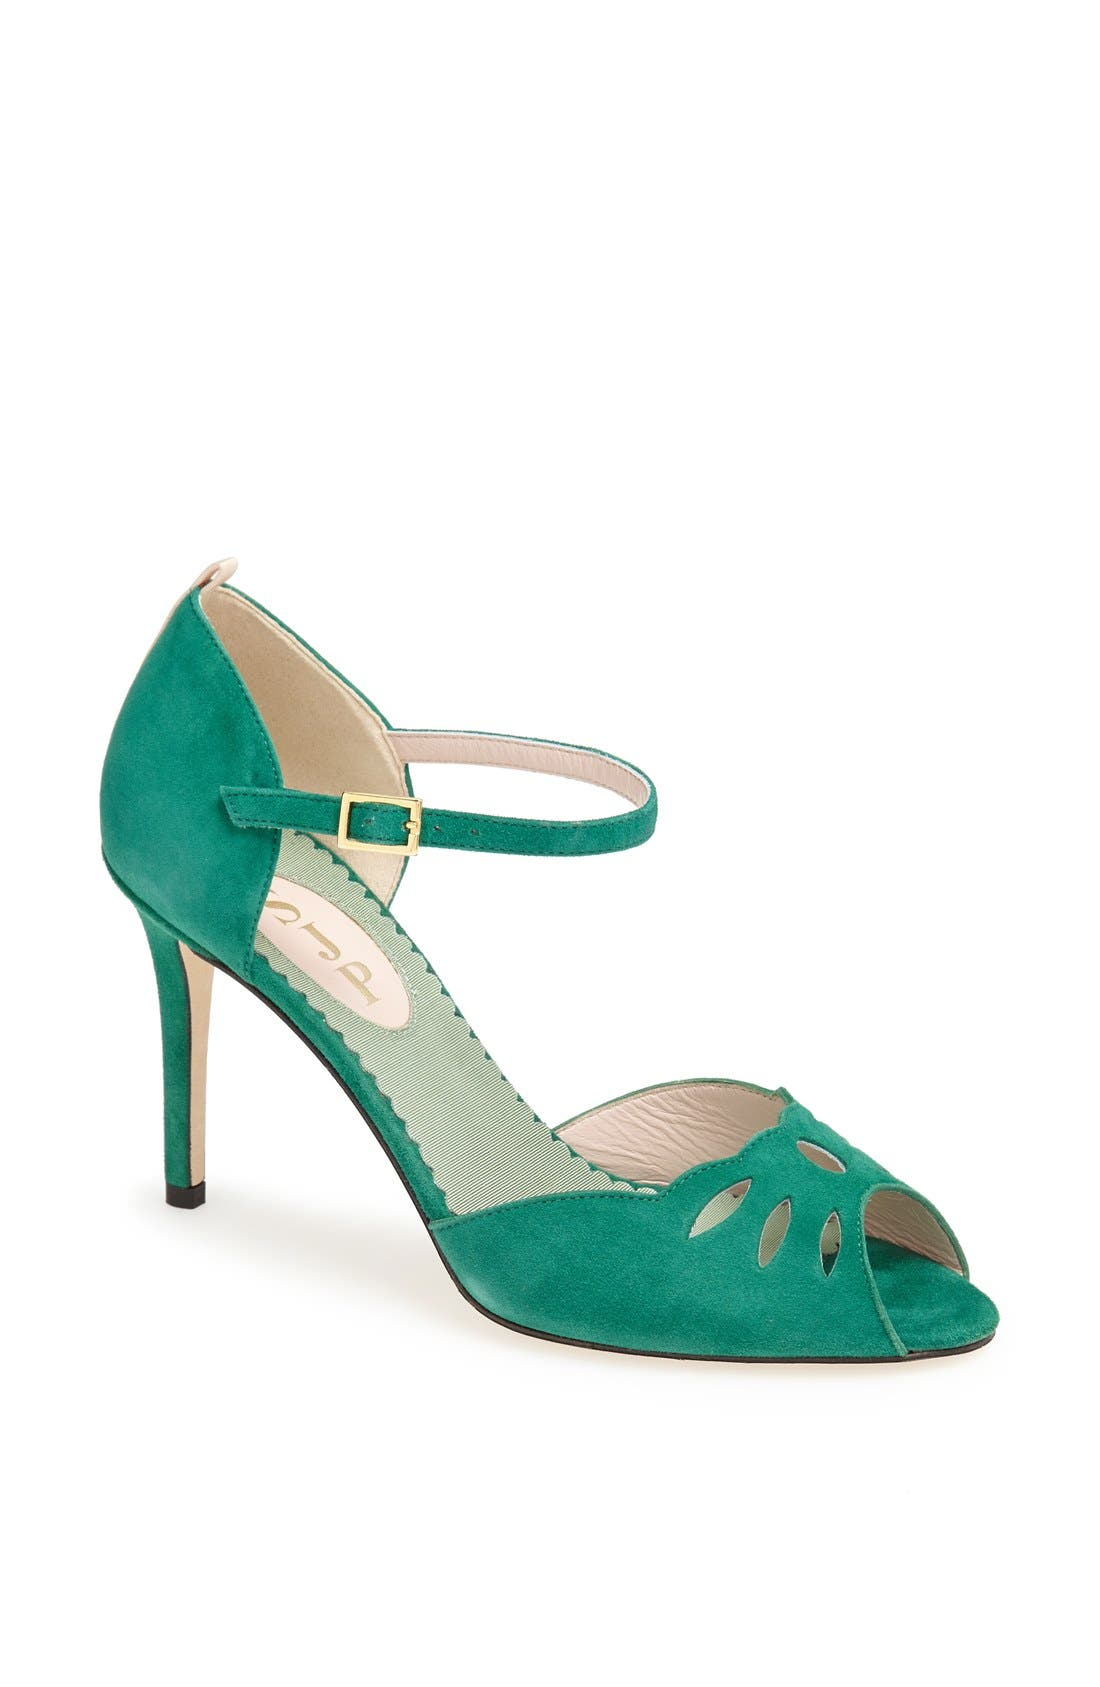 Alternate Image 1 Selected - SJP 'Ina' Pump (Nordstrom Exclusive)